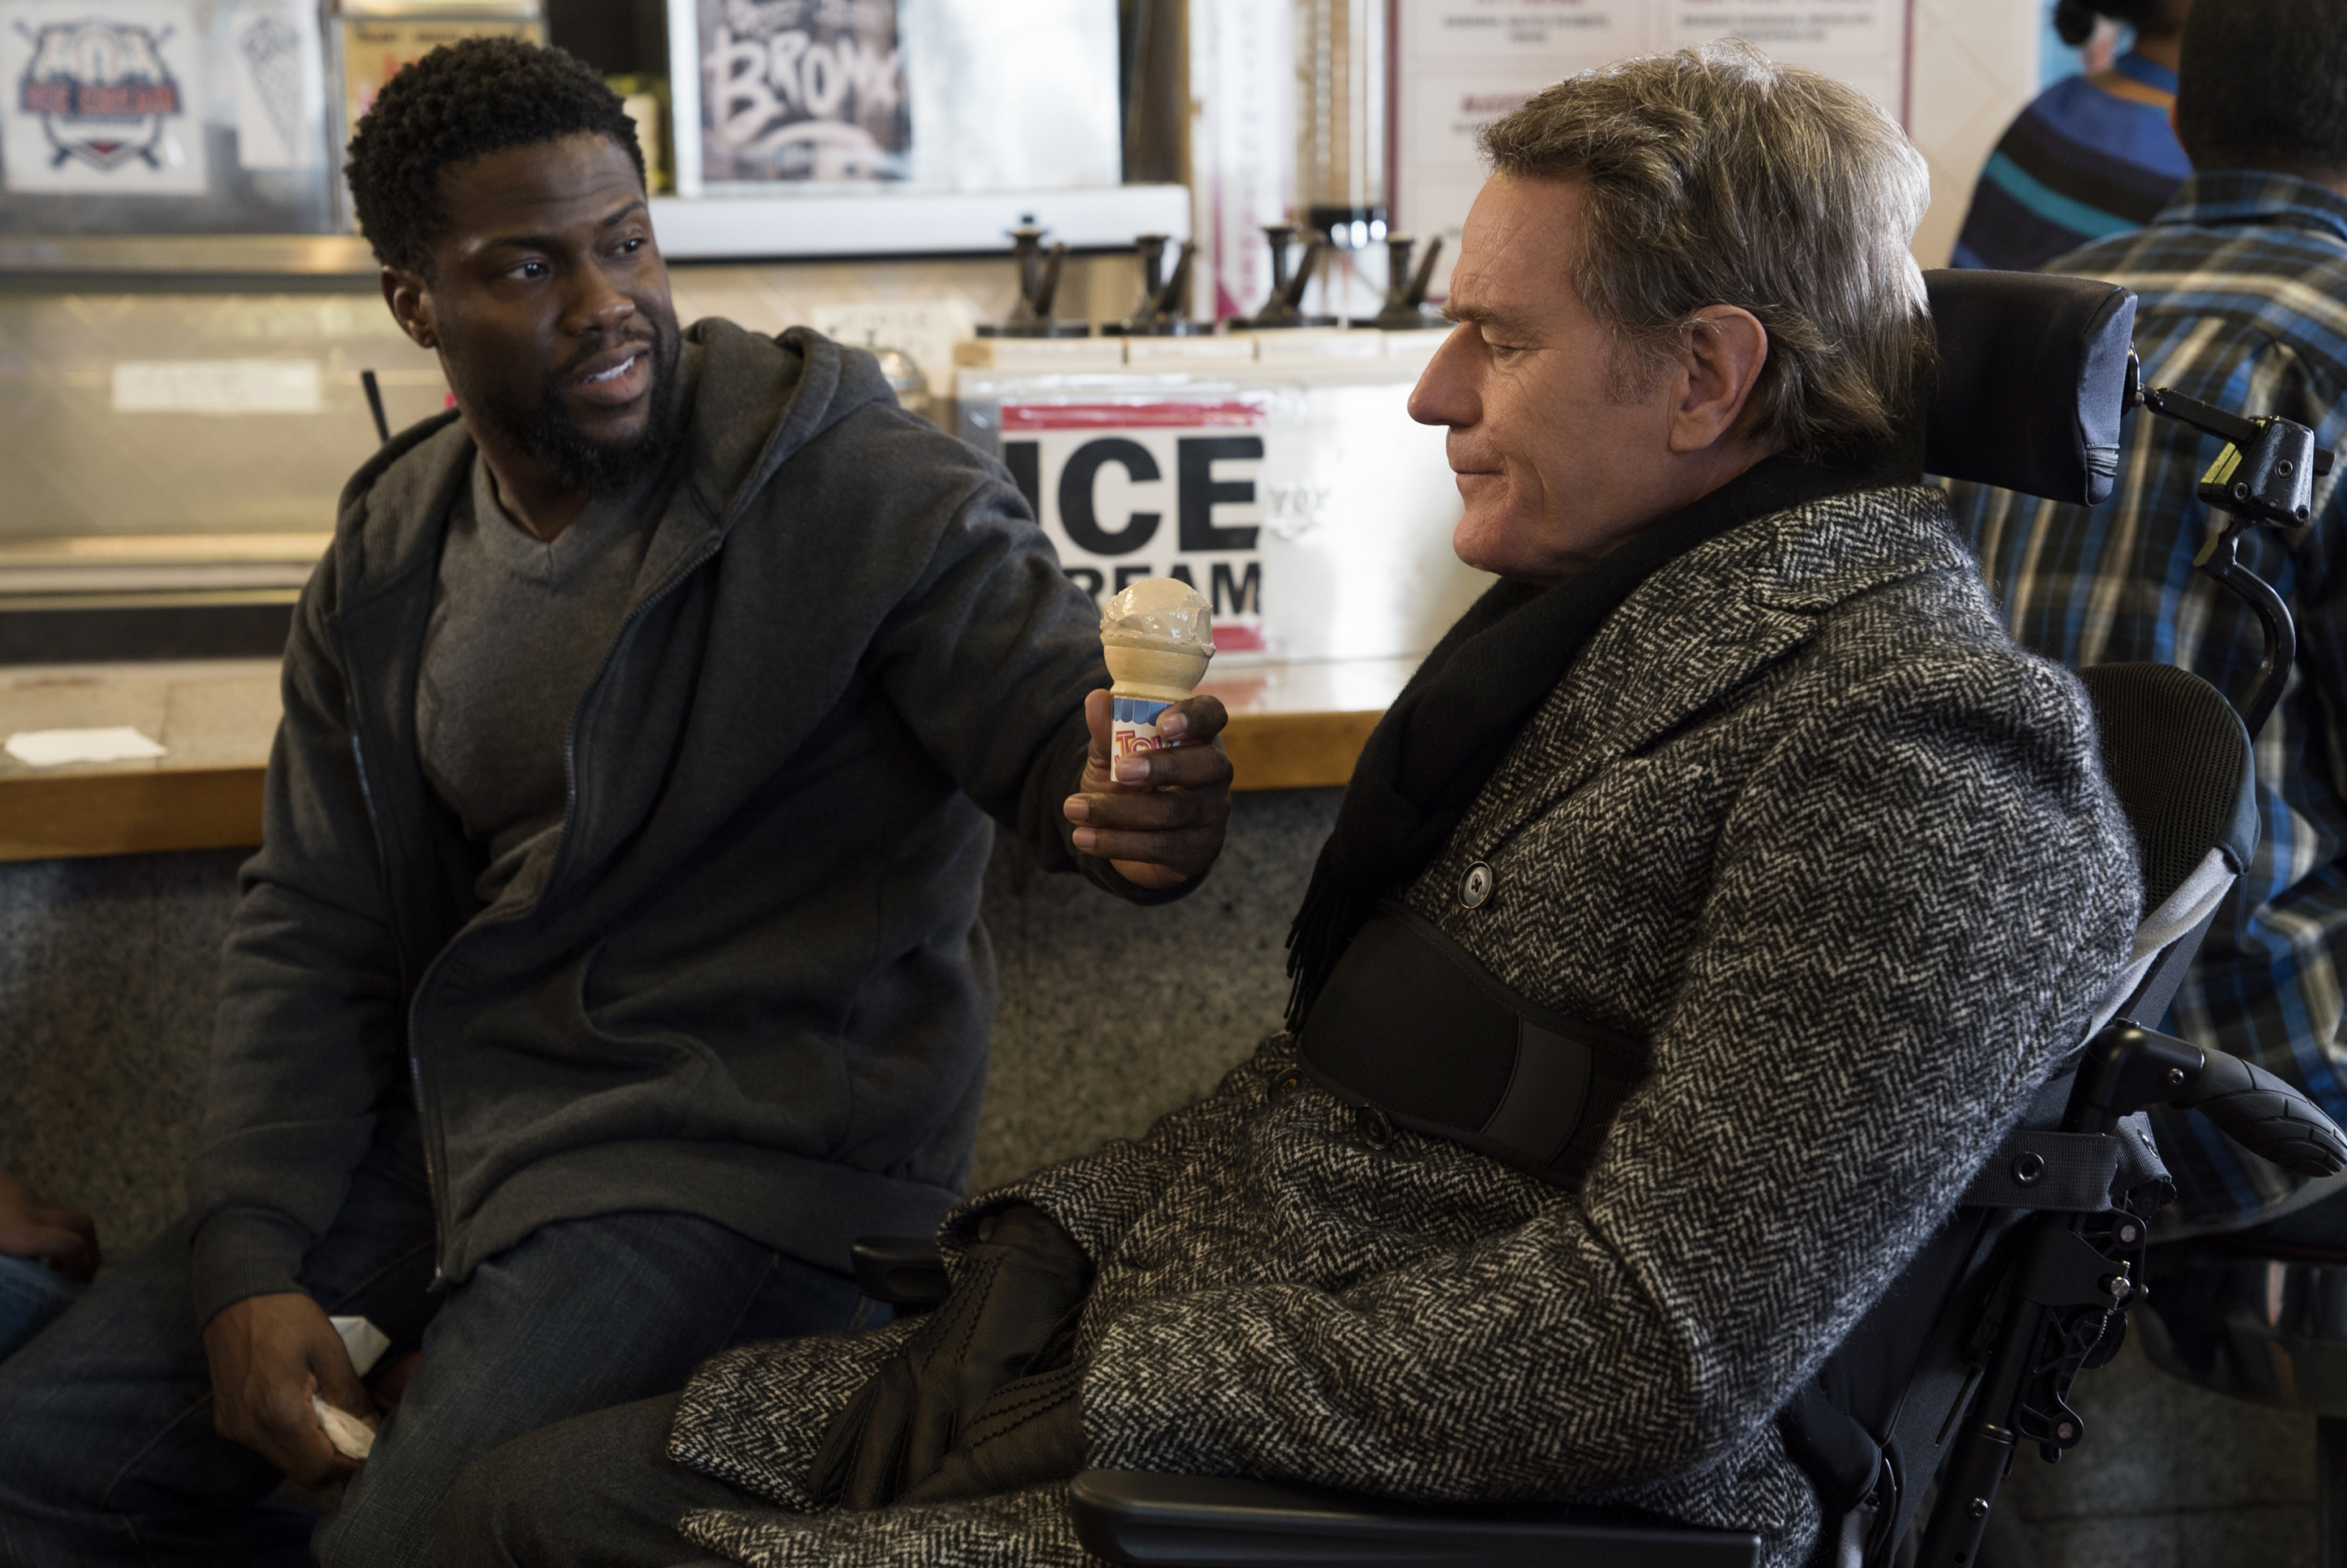 'The Upside' Review: French Feel-Good Comedy Gets Hart-Felt Remake